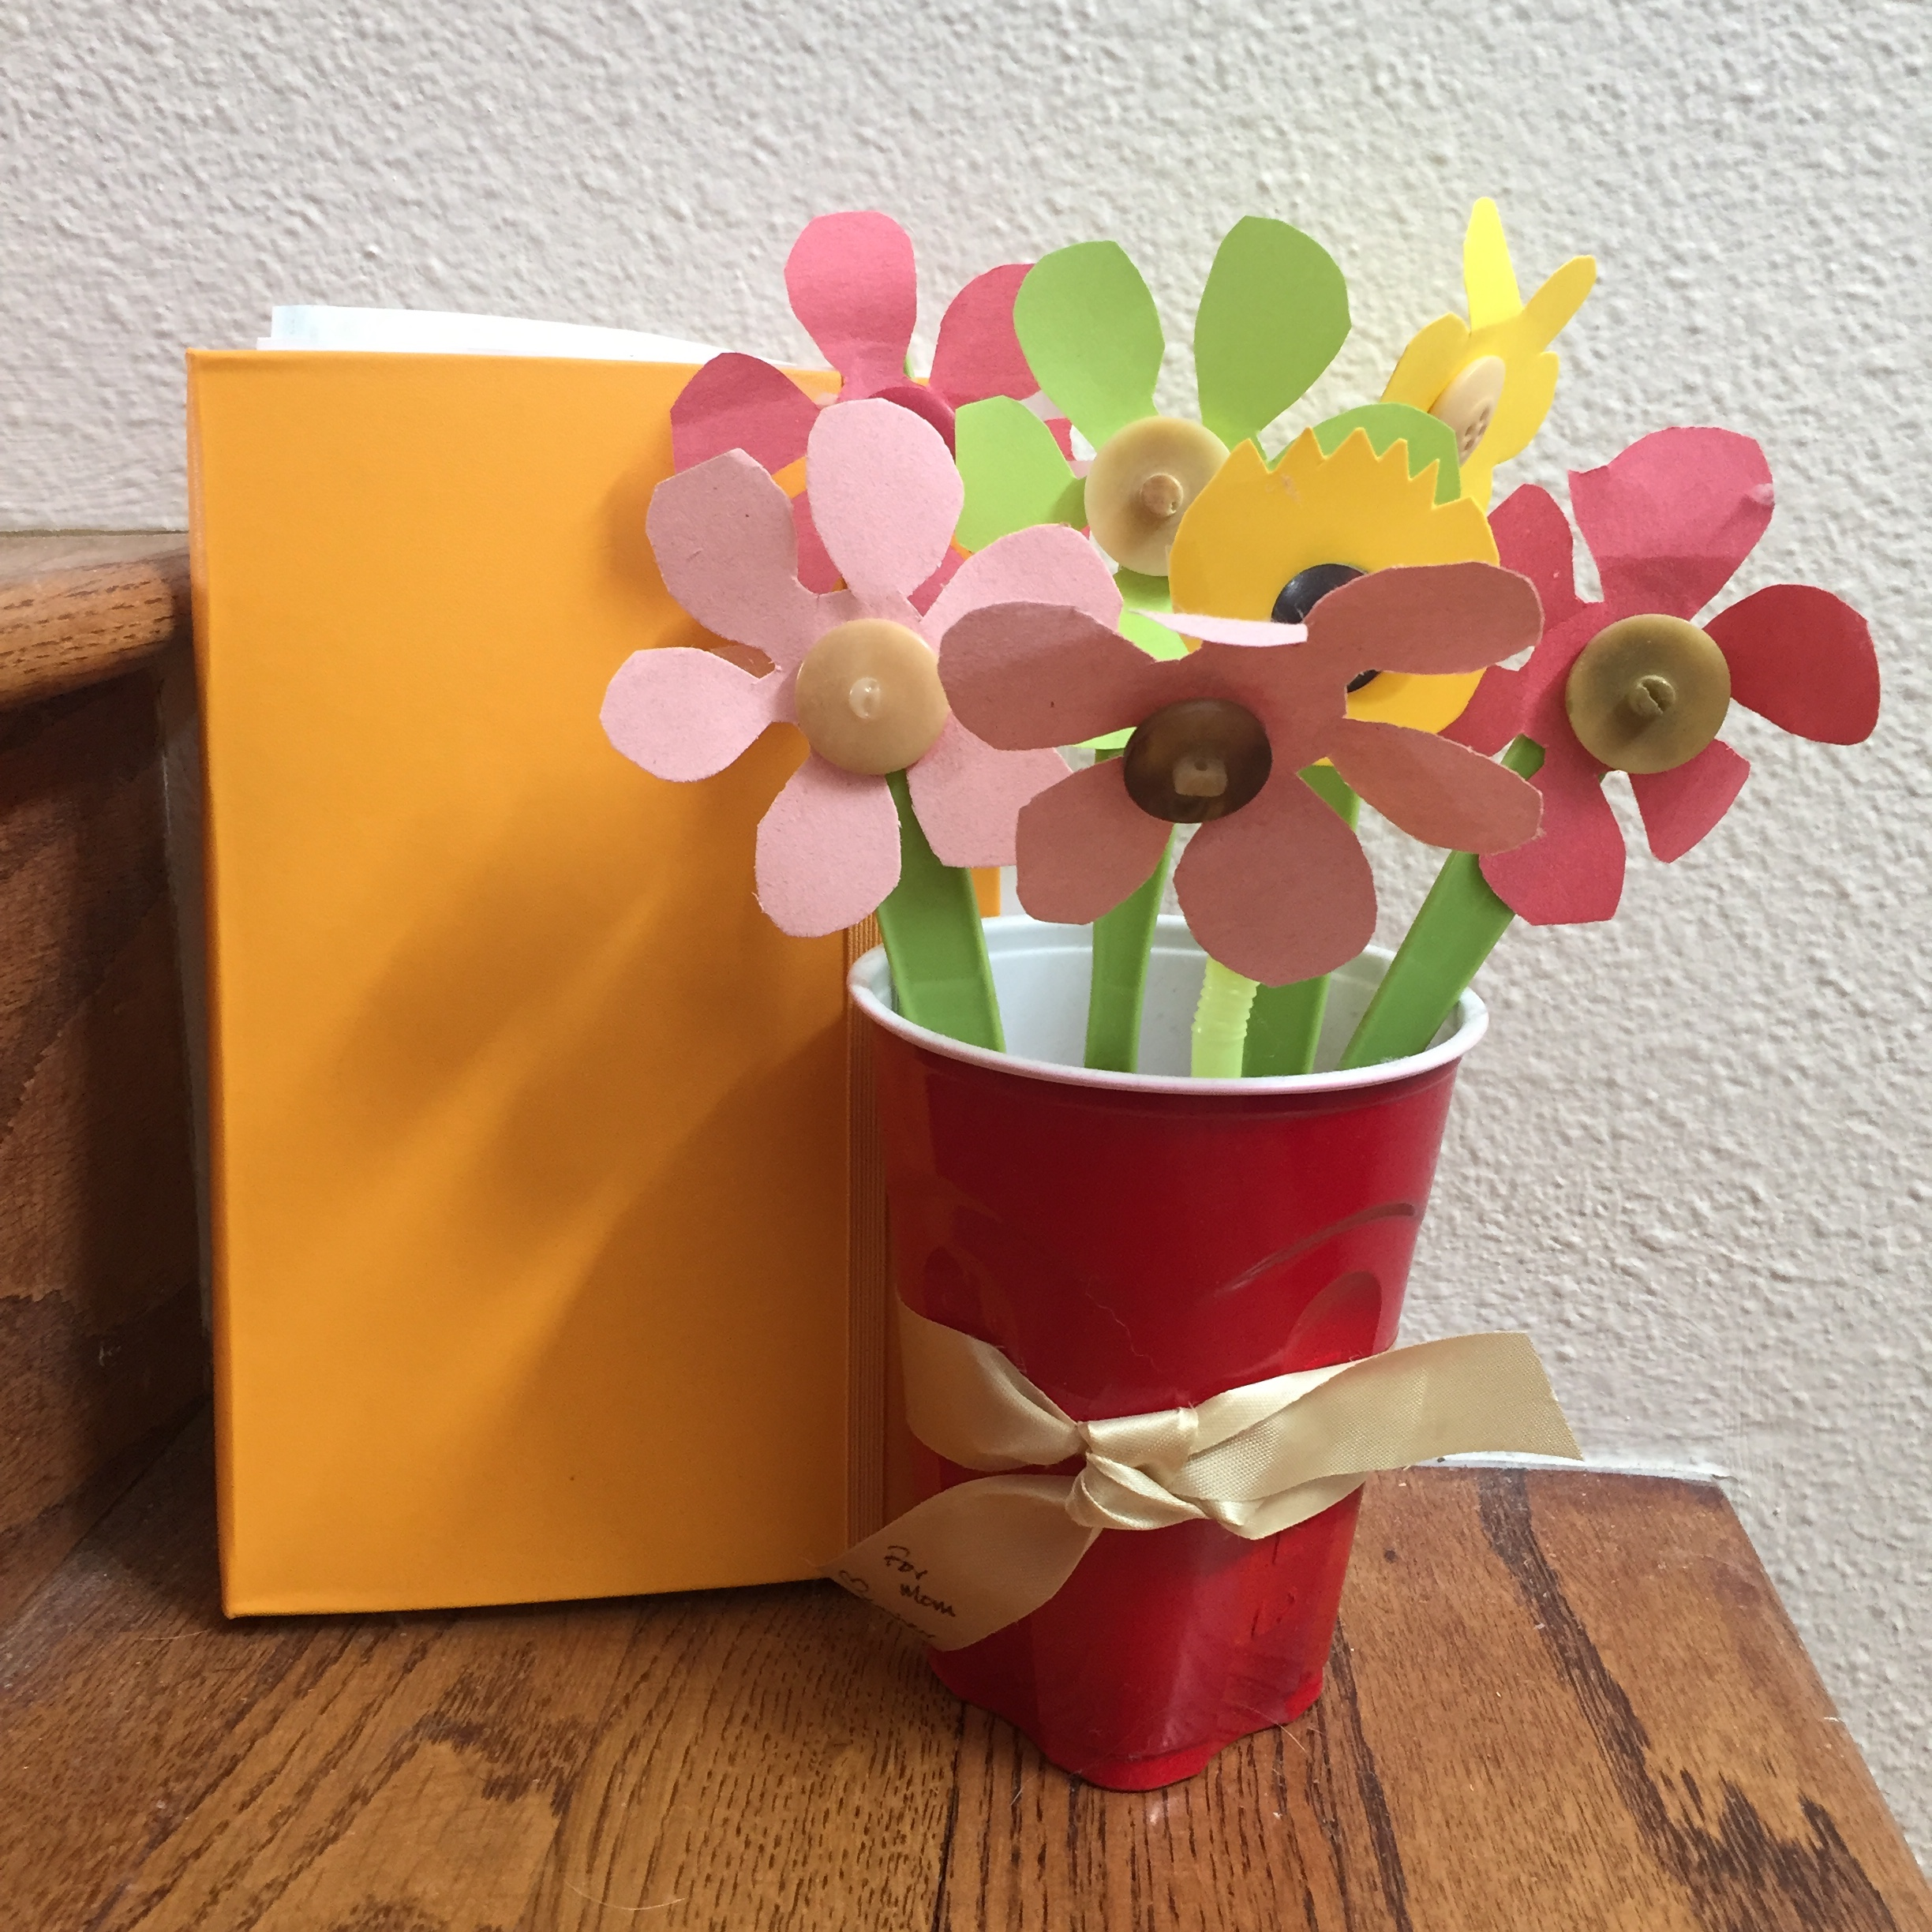 Moleskin journal and handmade flower button bouquet for Mothers' Day